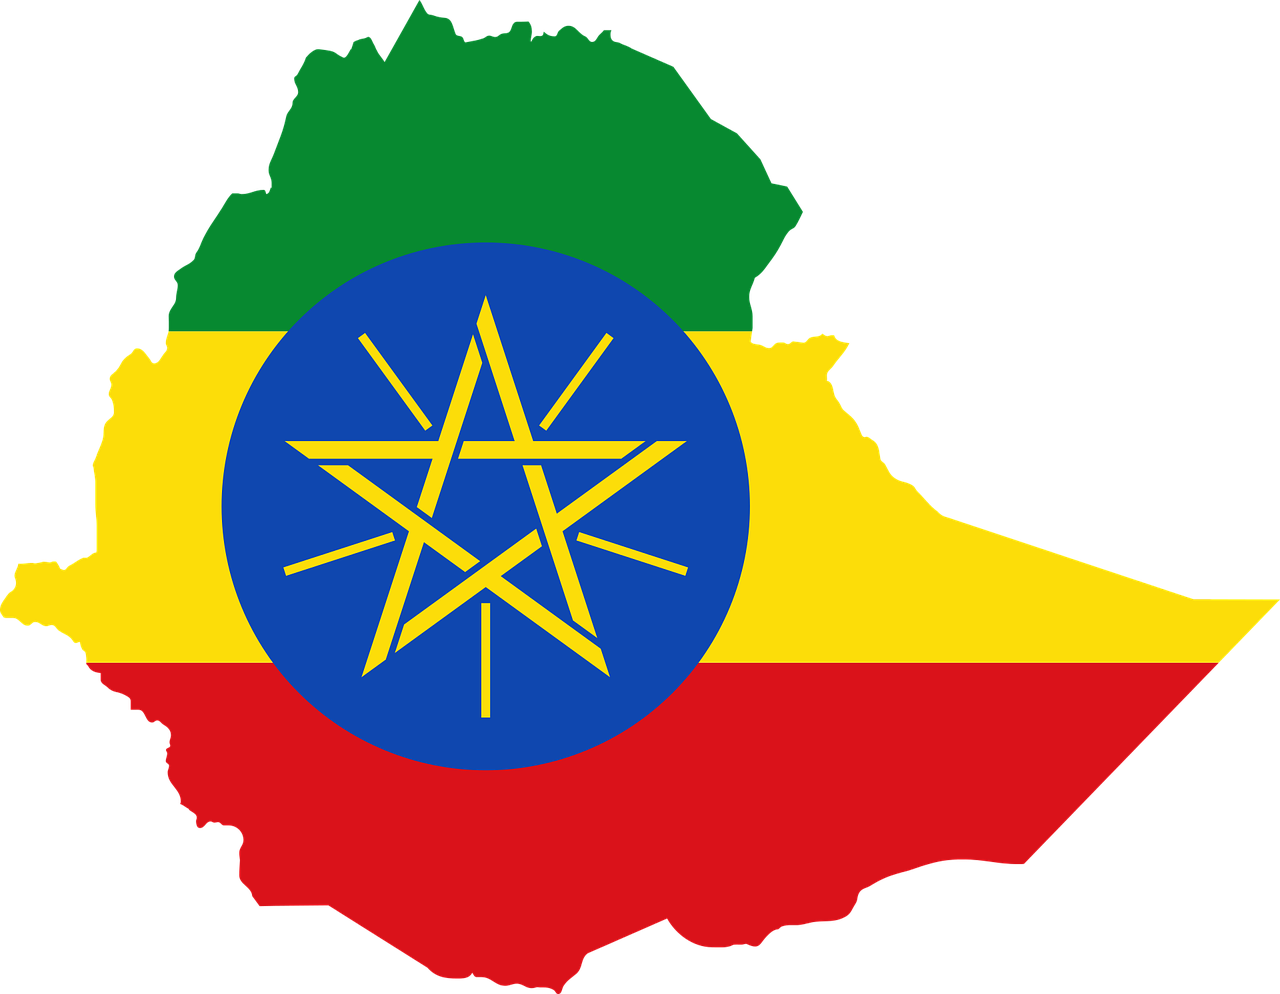 Bodies with gunshot wounds and bound hands were found floating in the river between Ethiopia's Tigray and Sudan